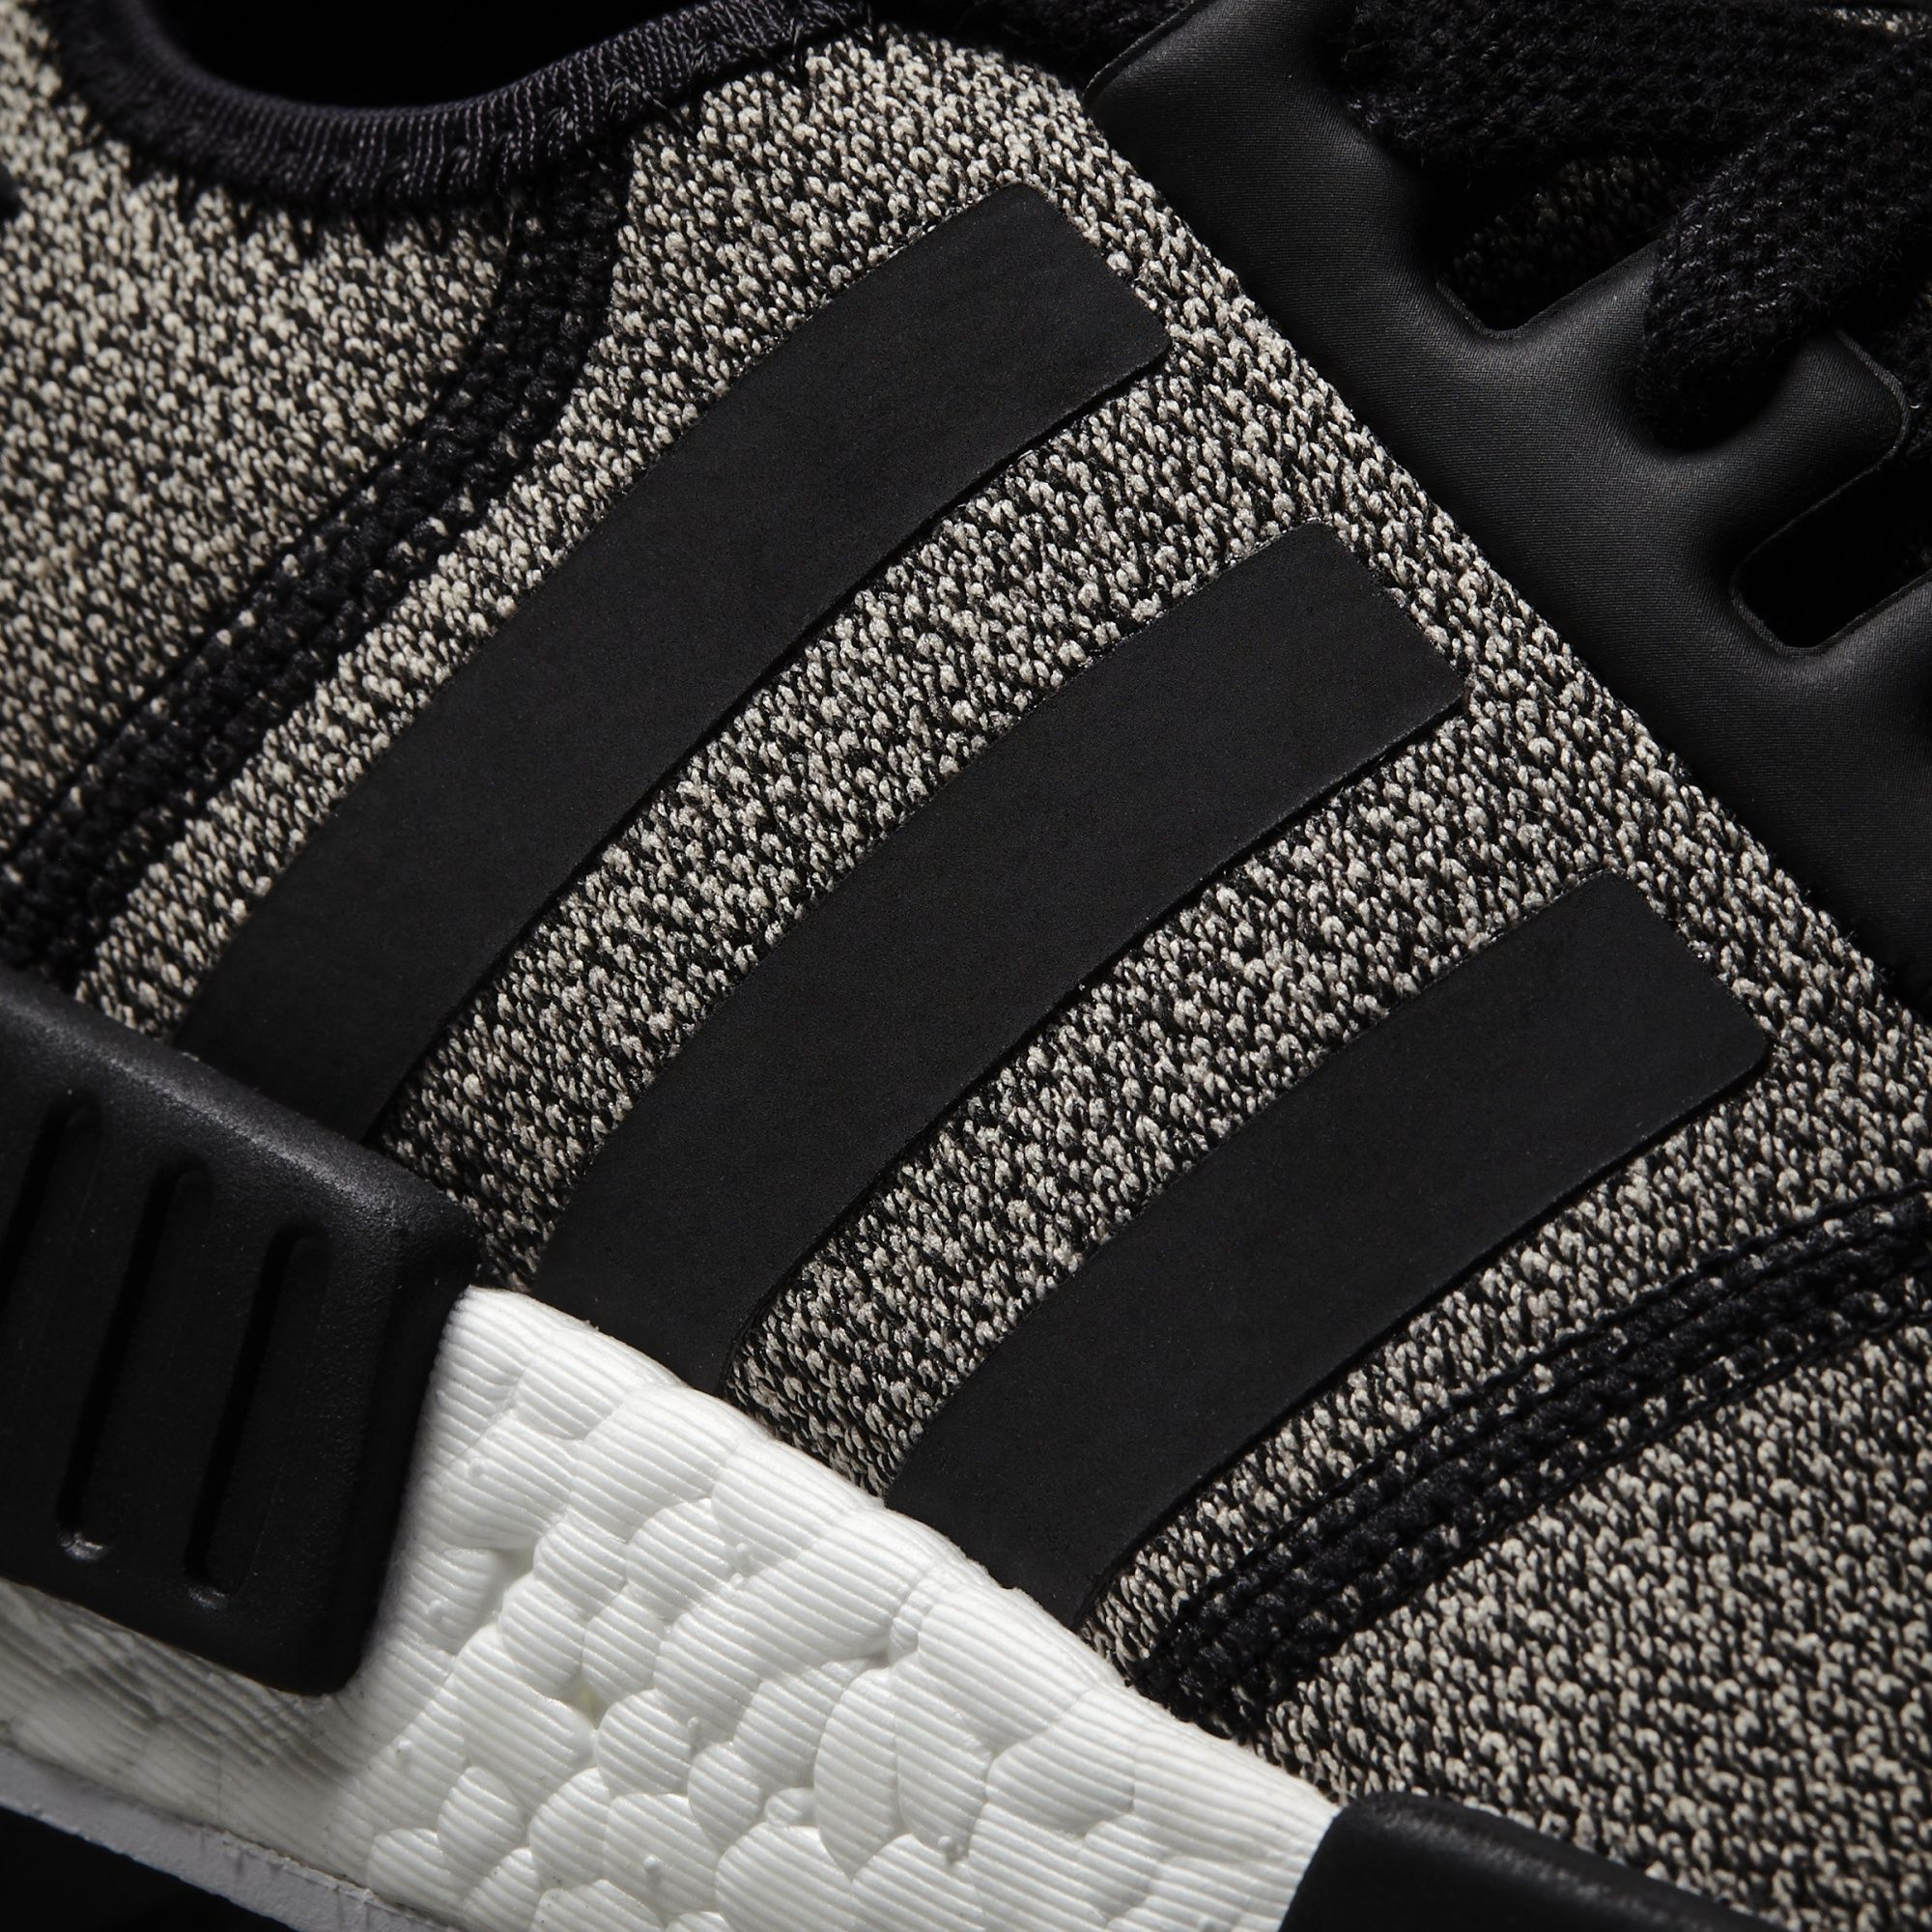 adidas NMD Black/White Reflective Stripes Not Reflect